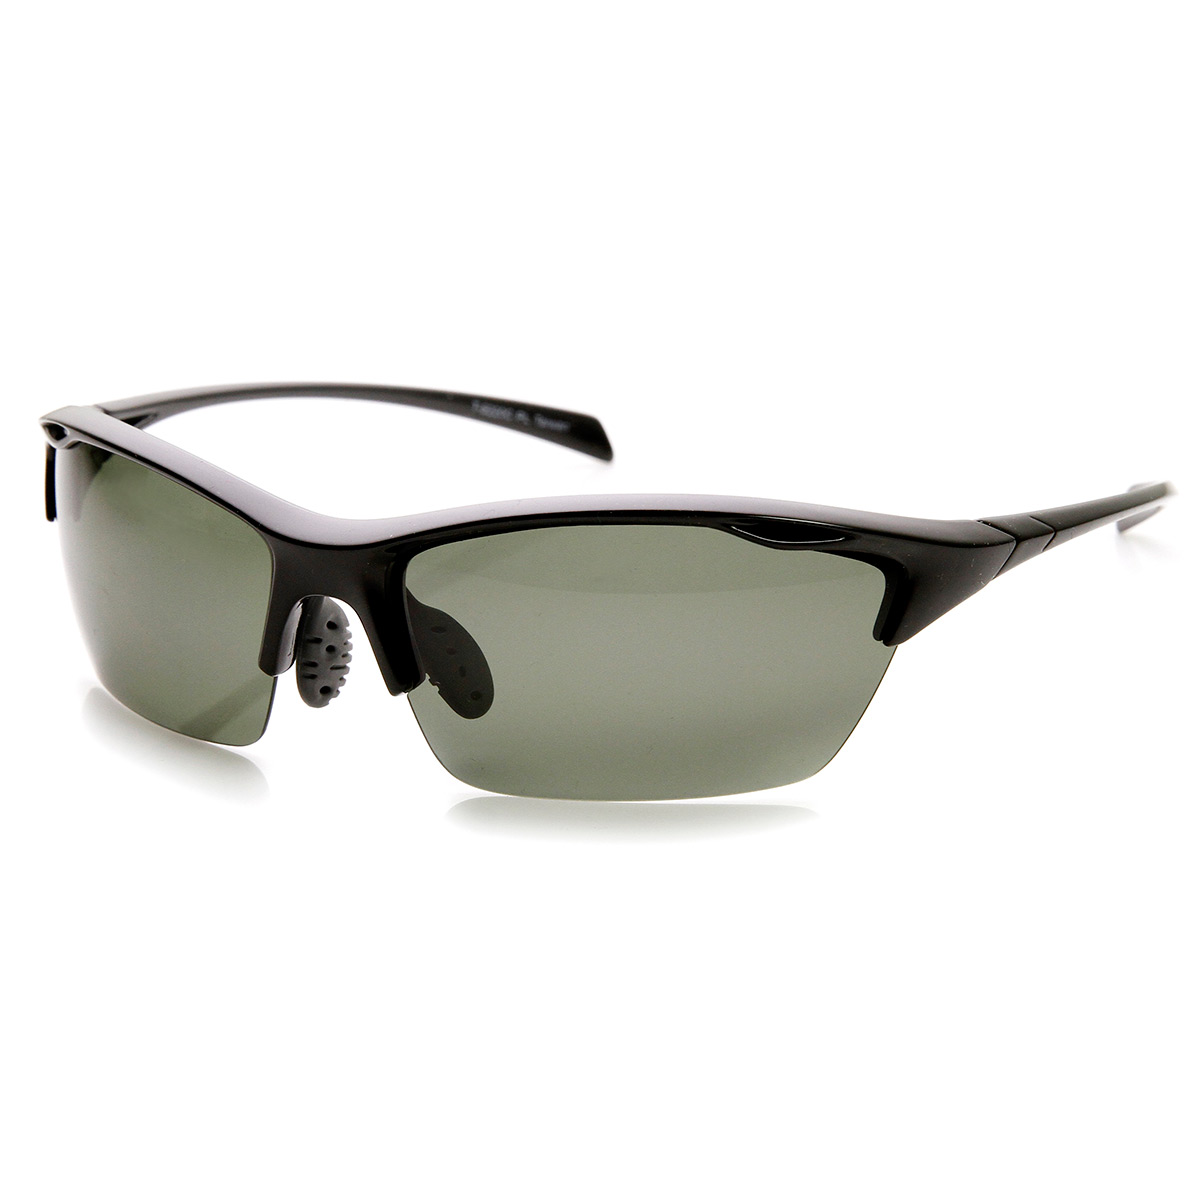 Rimless Glasses Durability : Durable TR-90 Polarized Lens Semi-Rimless Extreme Sports ...